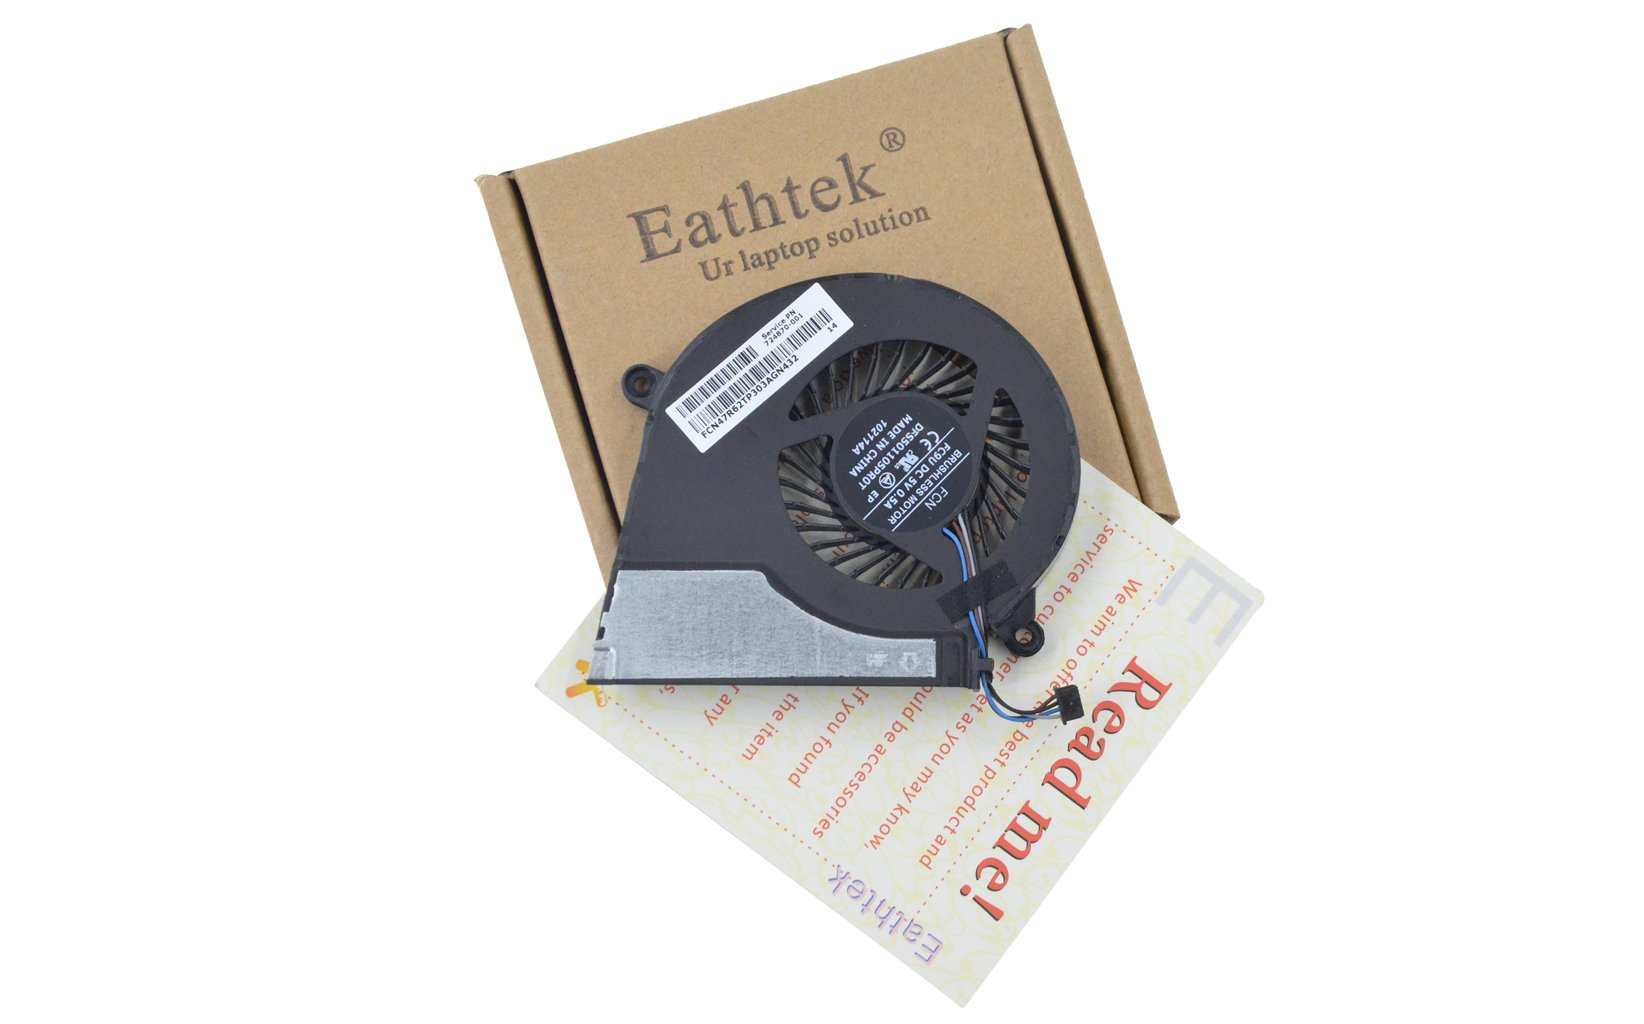 Eathtek Replacement CPU Cooling Fan for HP Pavilion 15-E043CL 17-E020DX 17-e184nr 17-e185nr 17-e186nr 17-e187nr 17-e072nr 17-e073nr 17-e074nr 17-e013nr 17-e014nr 17-e016dx 724870-001 725684-001 series